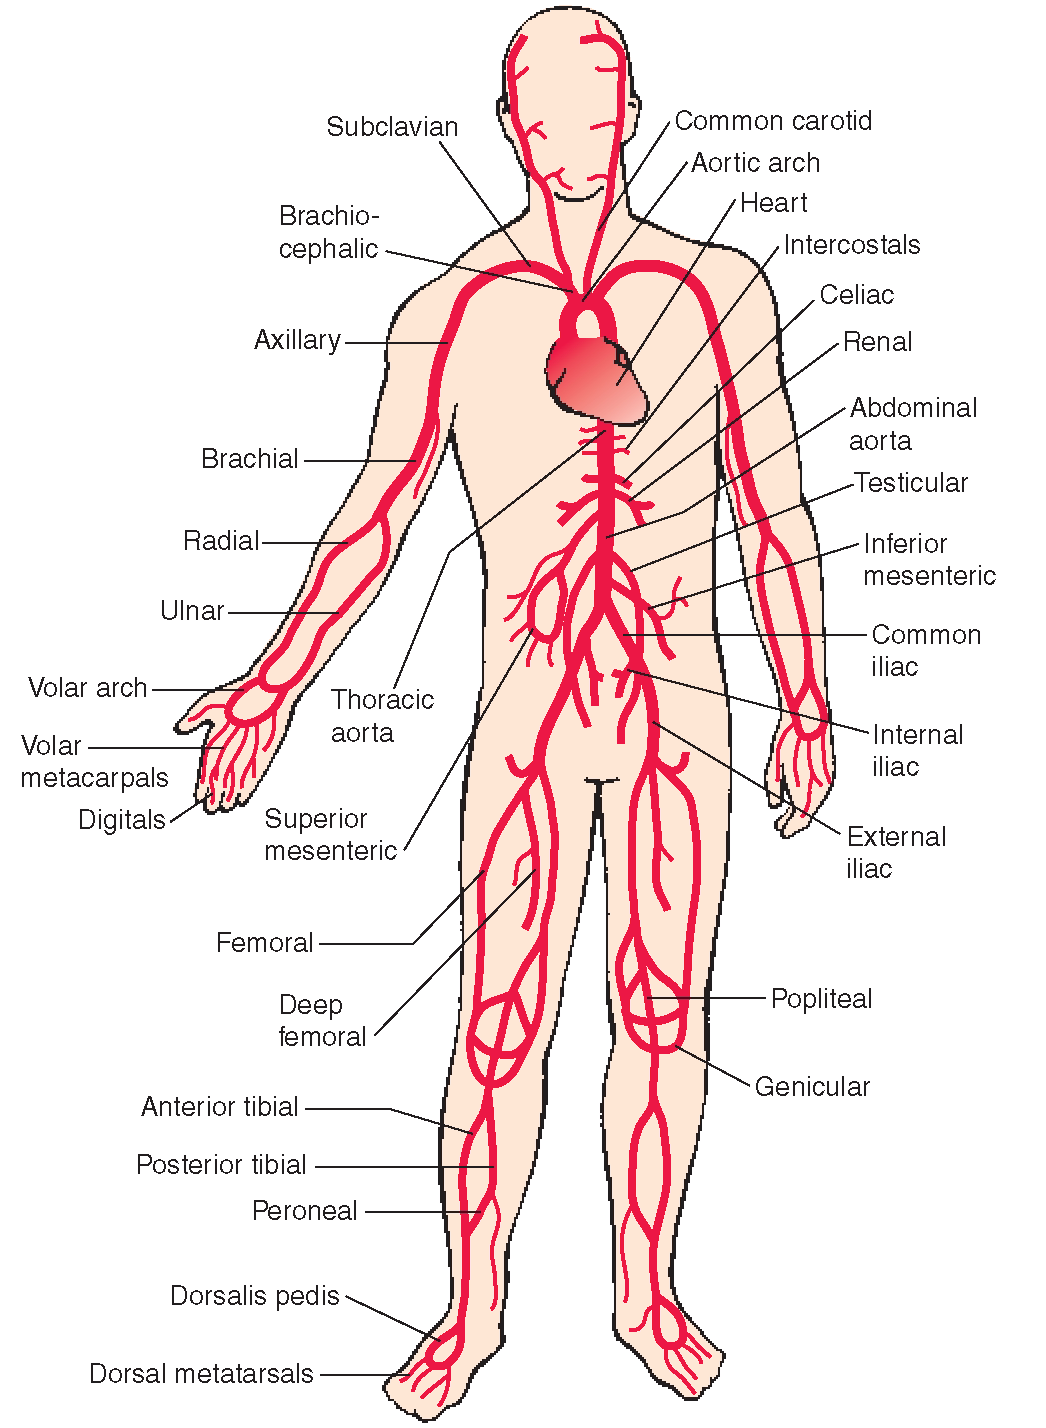 Principal Systemic Arteries The Arterial System Carries